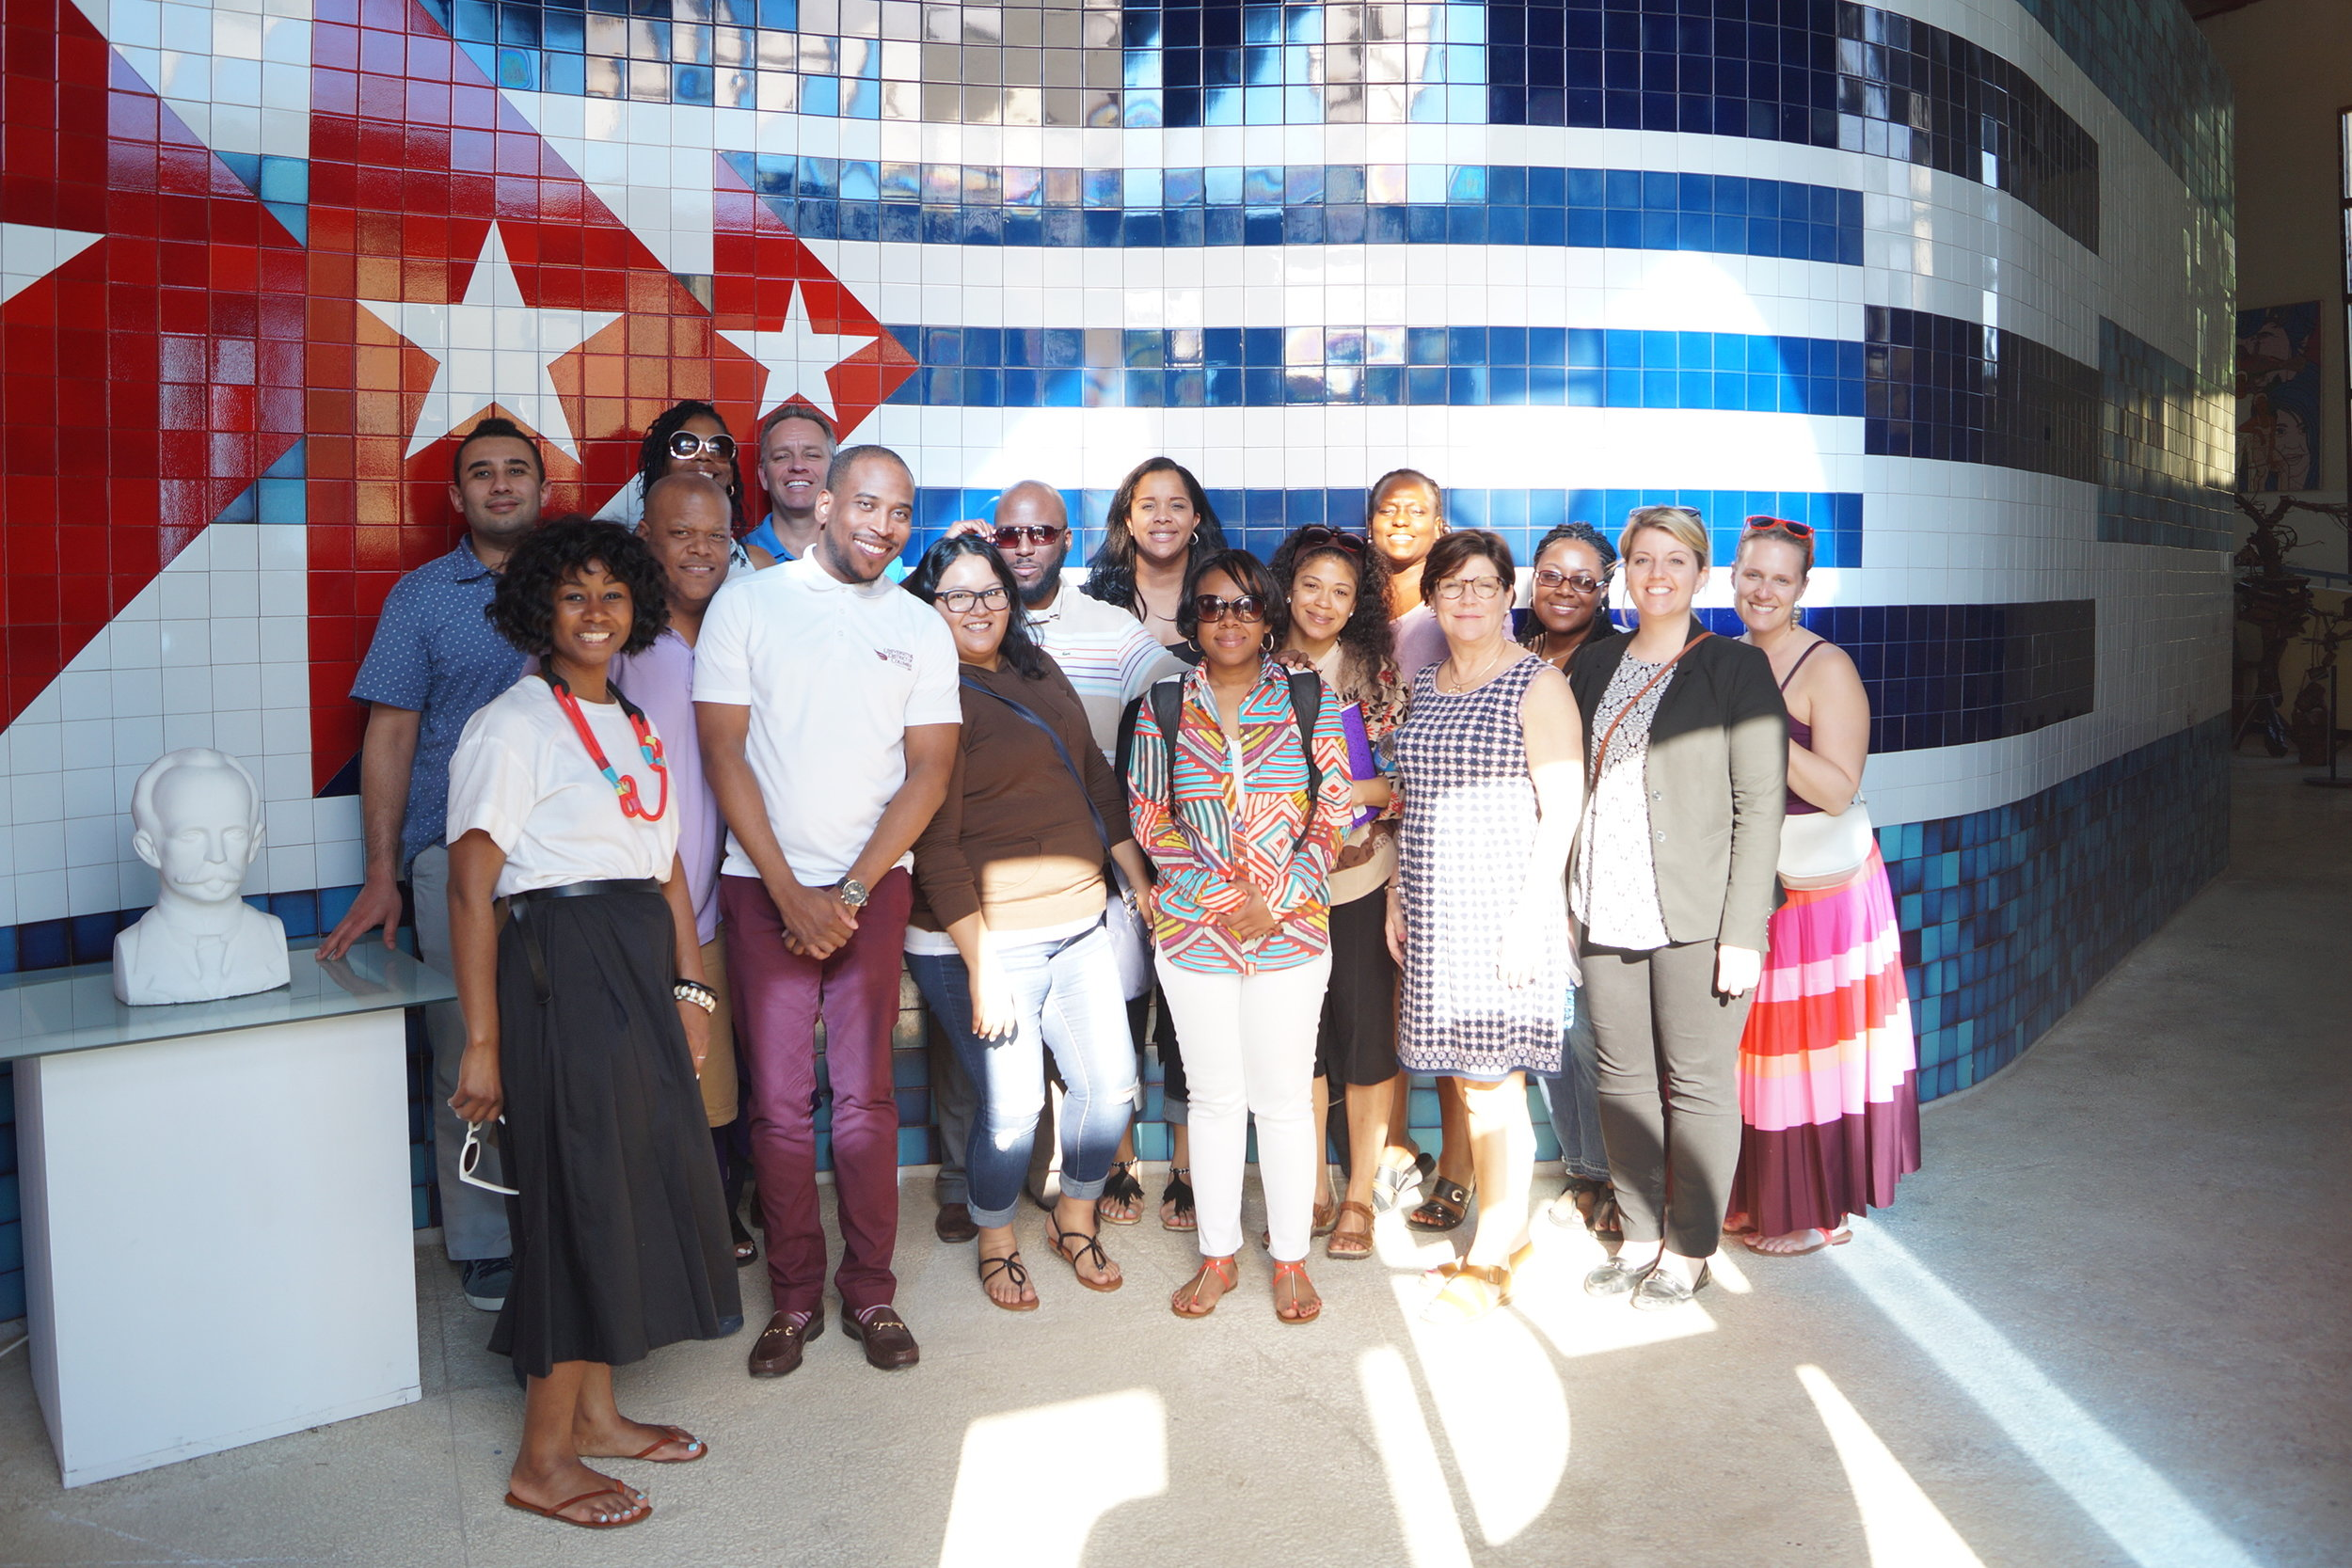 University of The District of Columbia Law School Housing Clinic - Havana, CubaTues., March 7, 2017 - Sun., March 12, 2017 (6 Days/5 Nights)